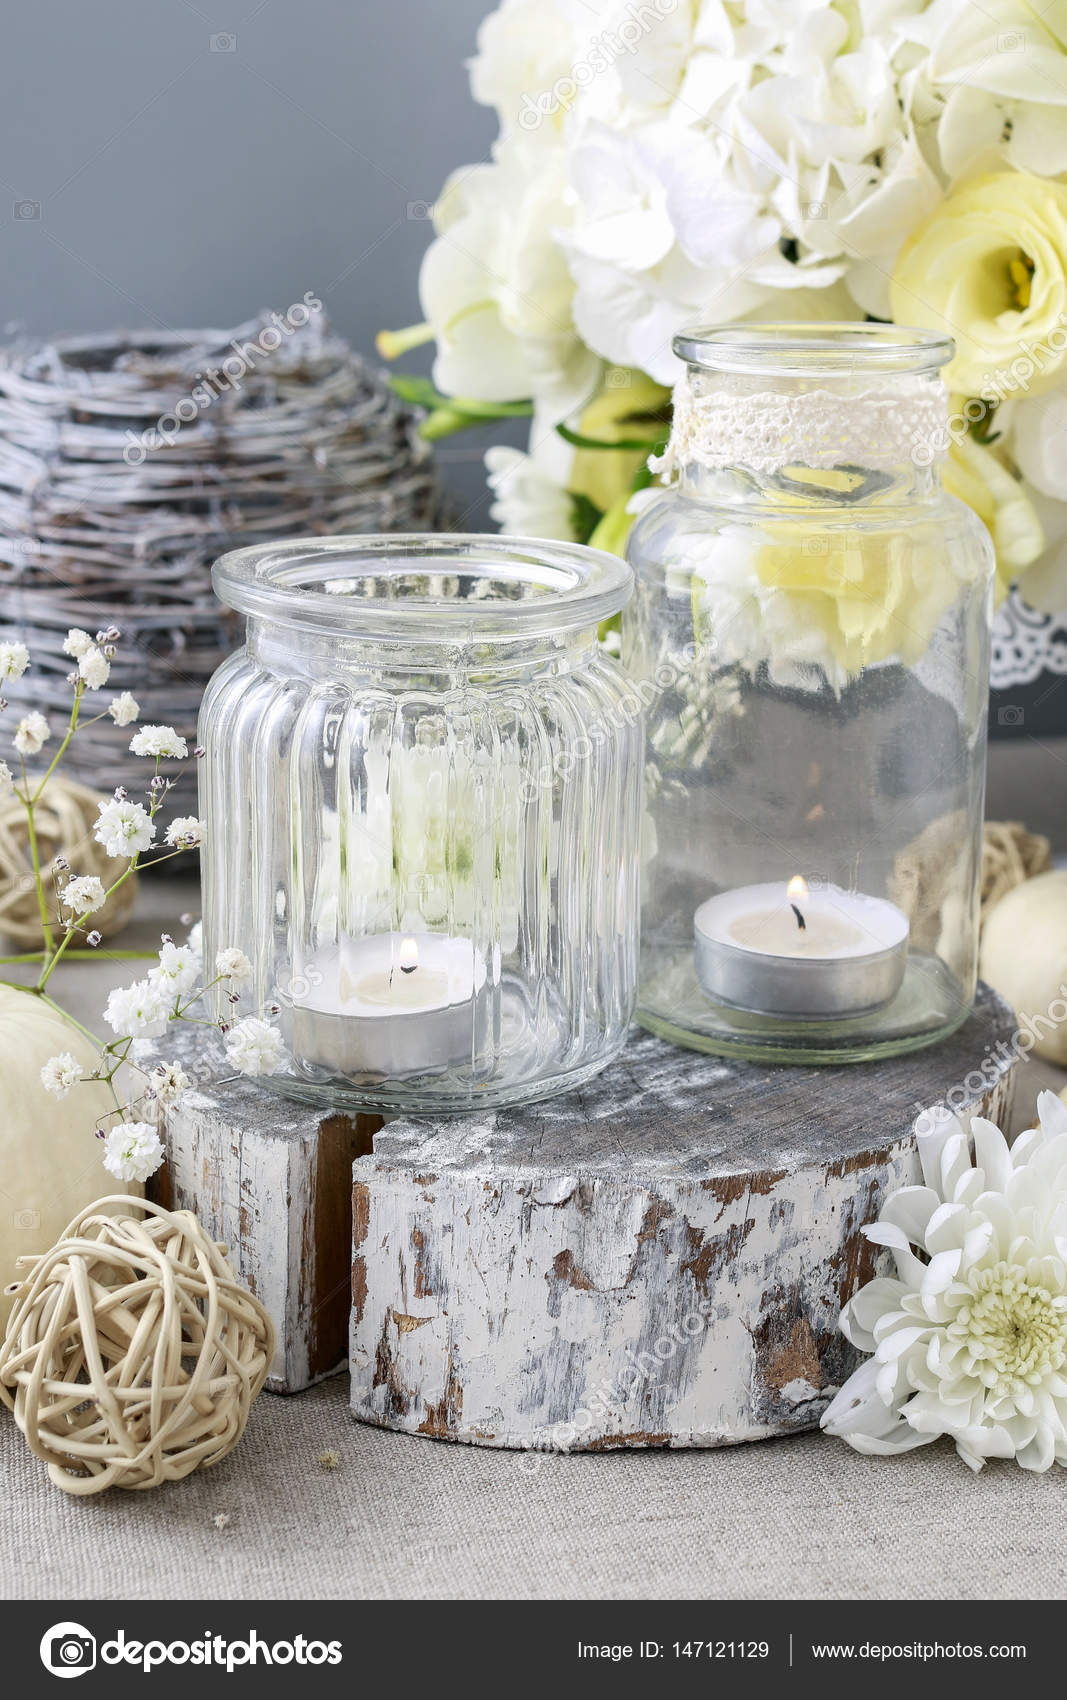 Wedding Decoration With Flowers And Candles In Glass Jars Stock